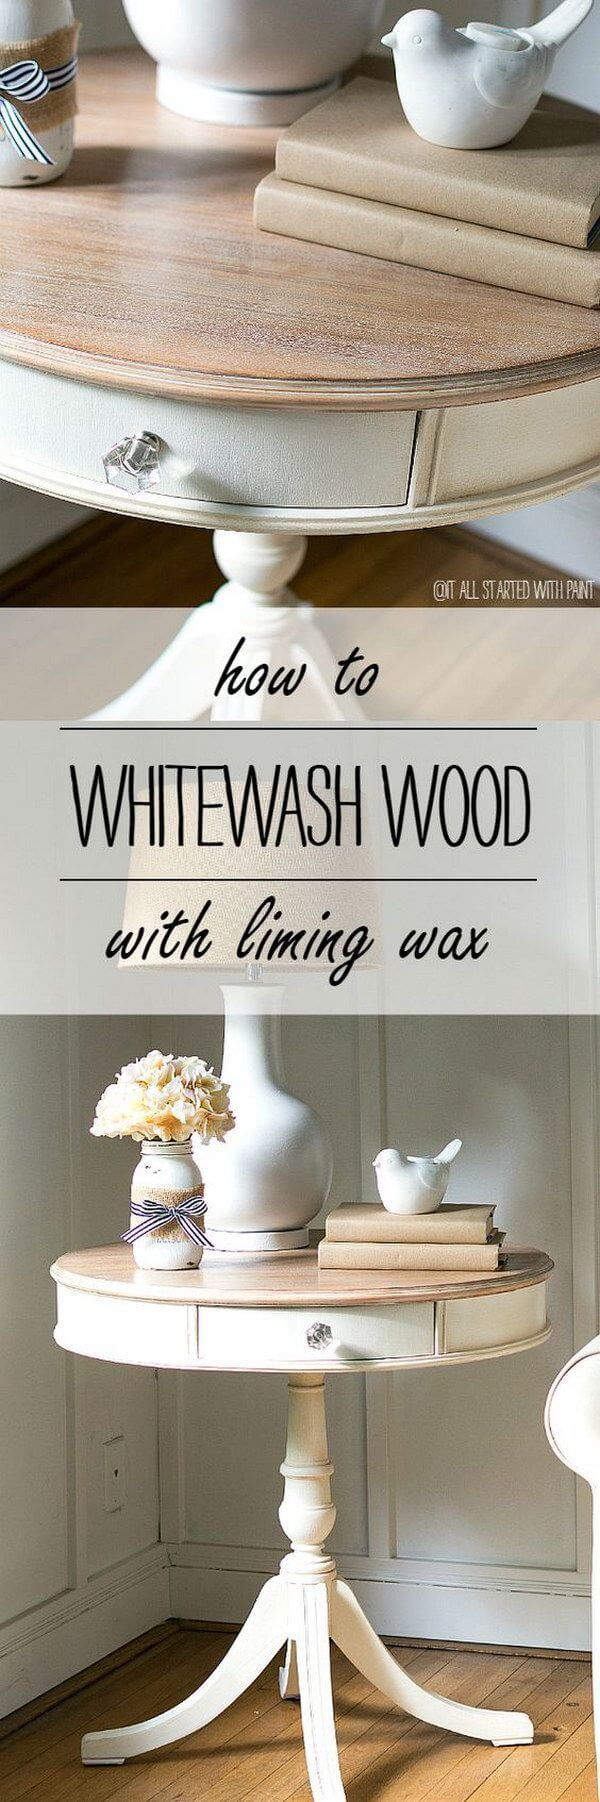 Whitewashing Methods For DIY Side Tables